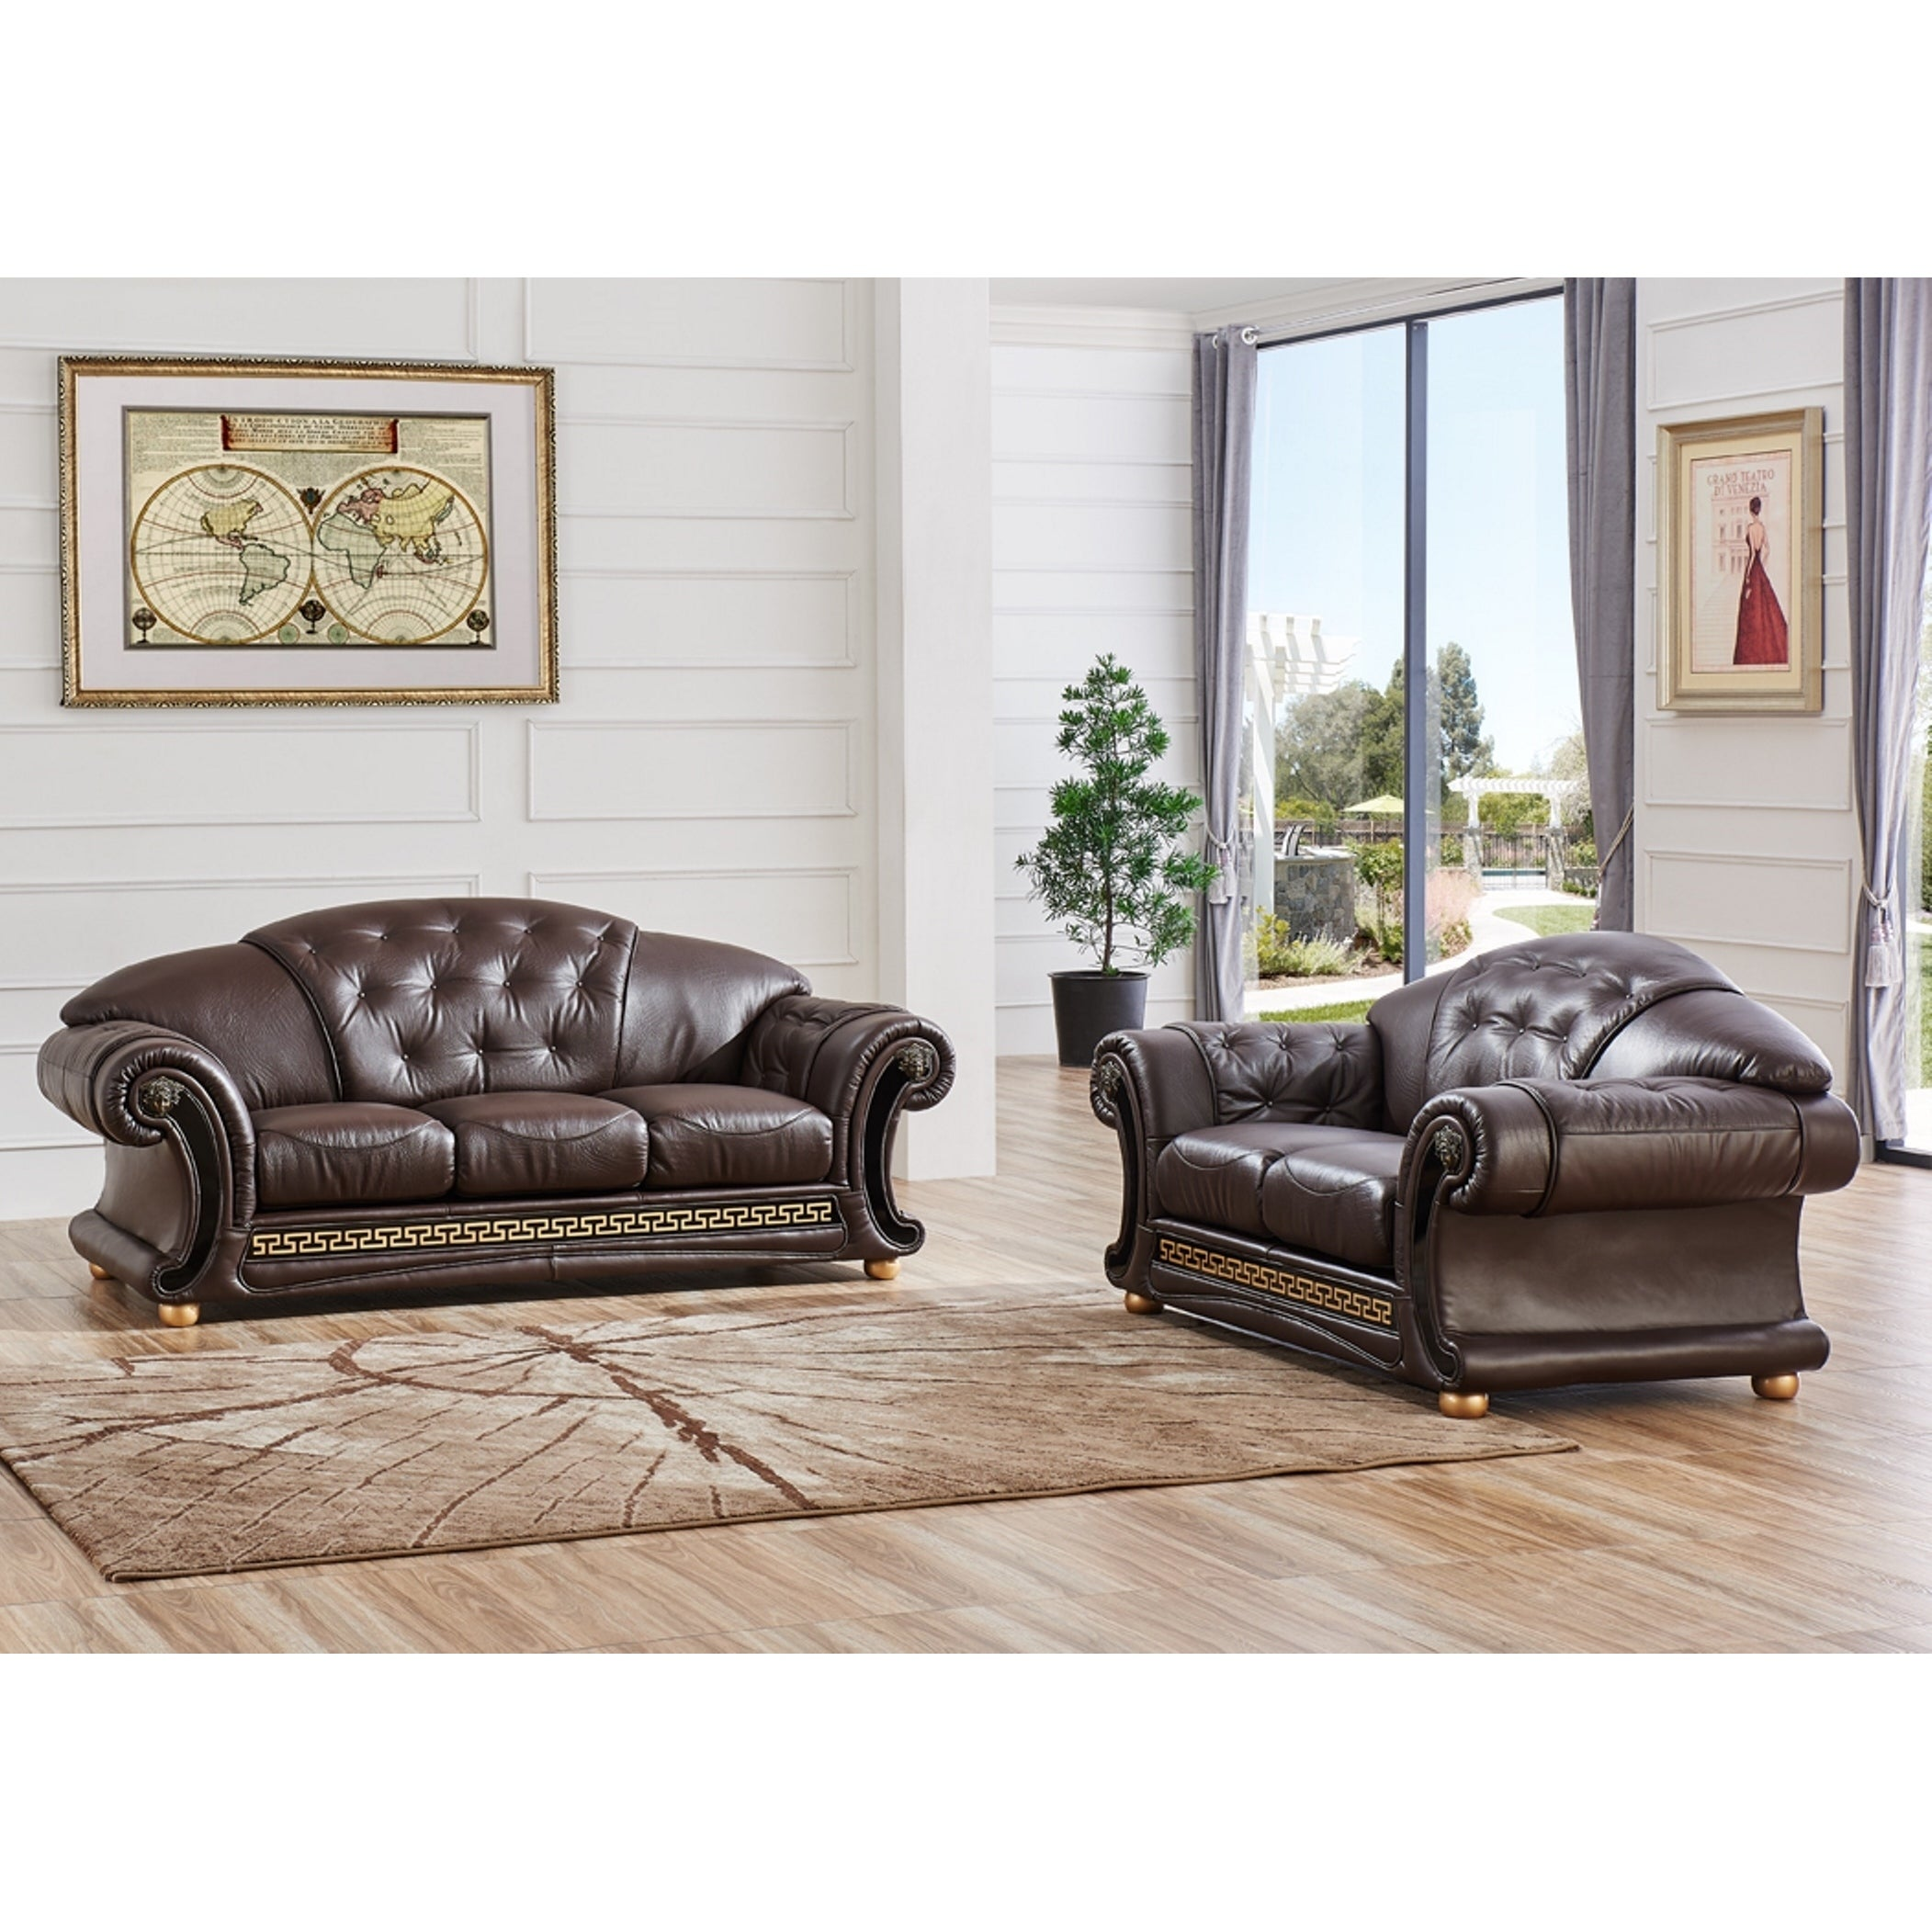 LUCA Home 2-piece Split Brown Leather Living Room Set - Free ...